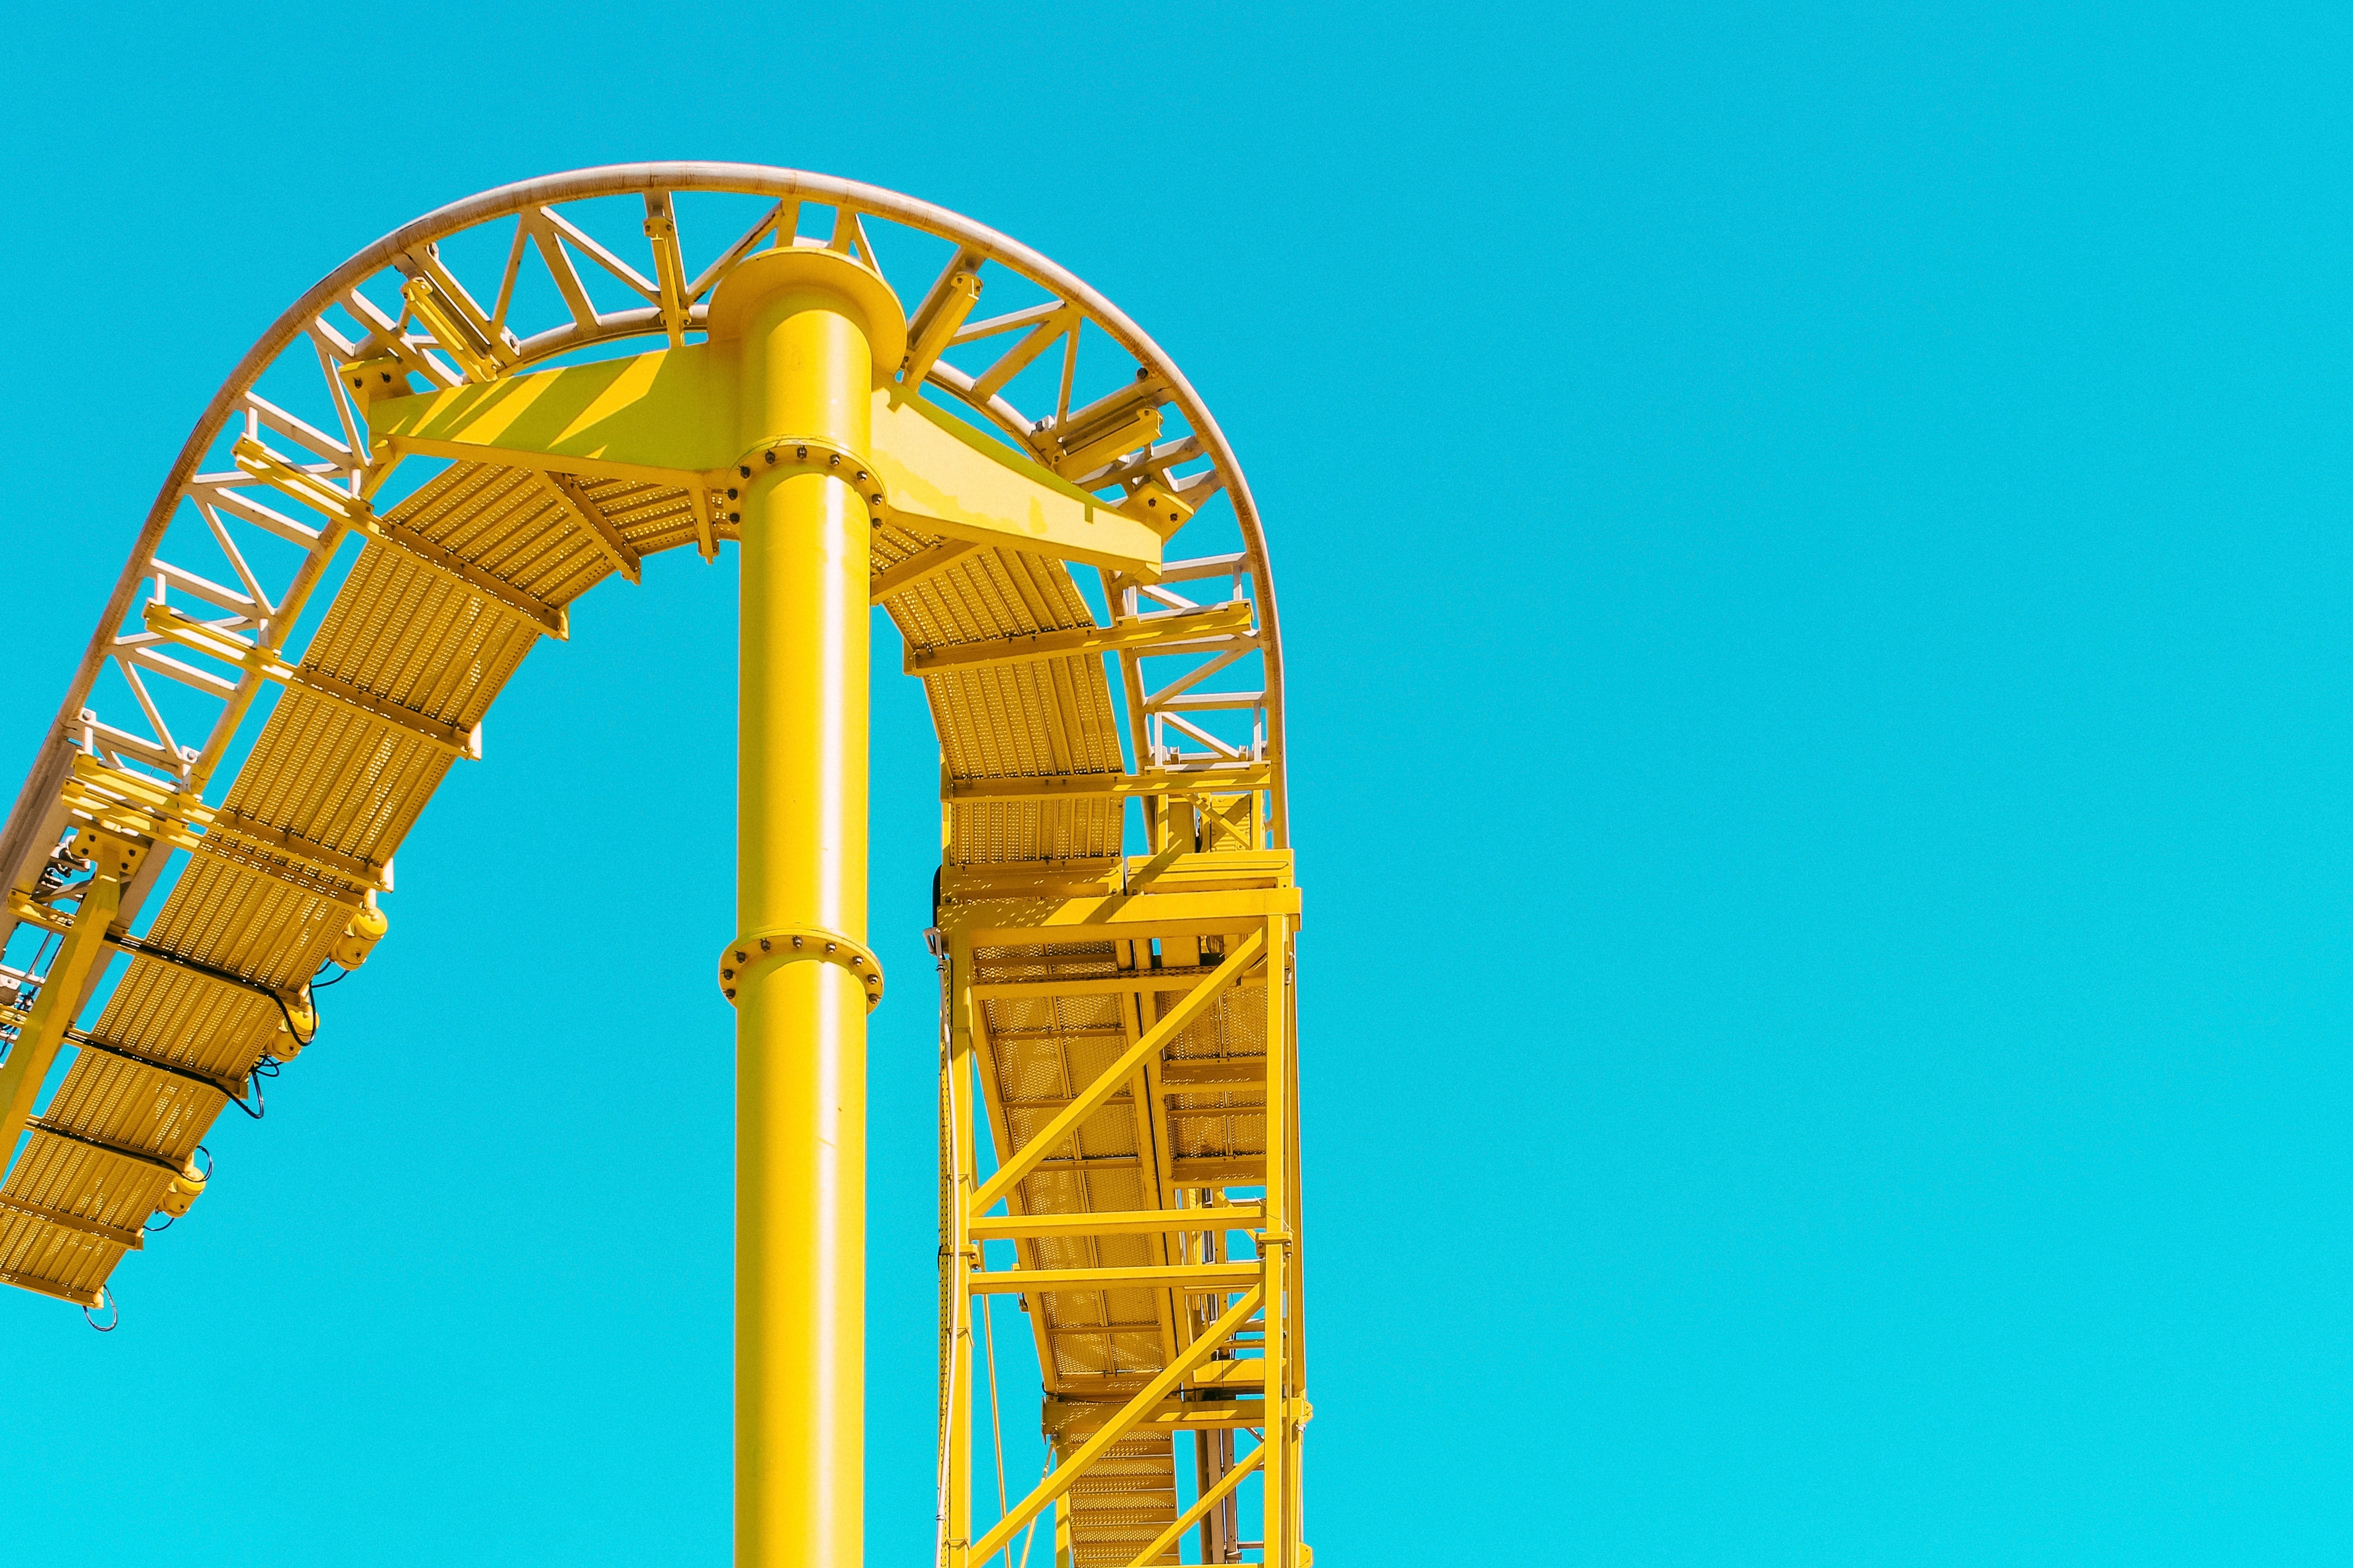 yellow roller coaster rail under clear sky